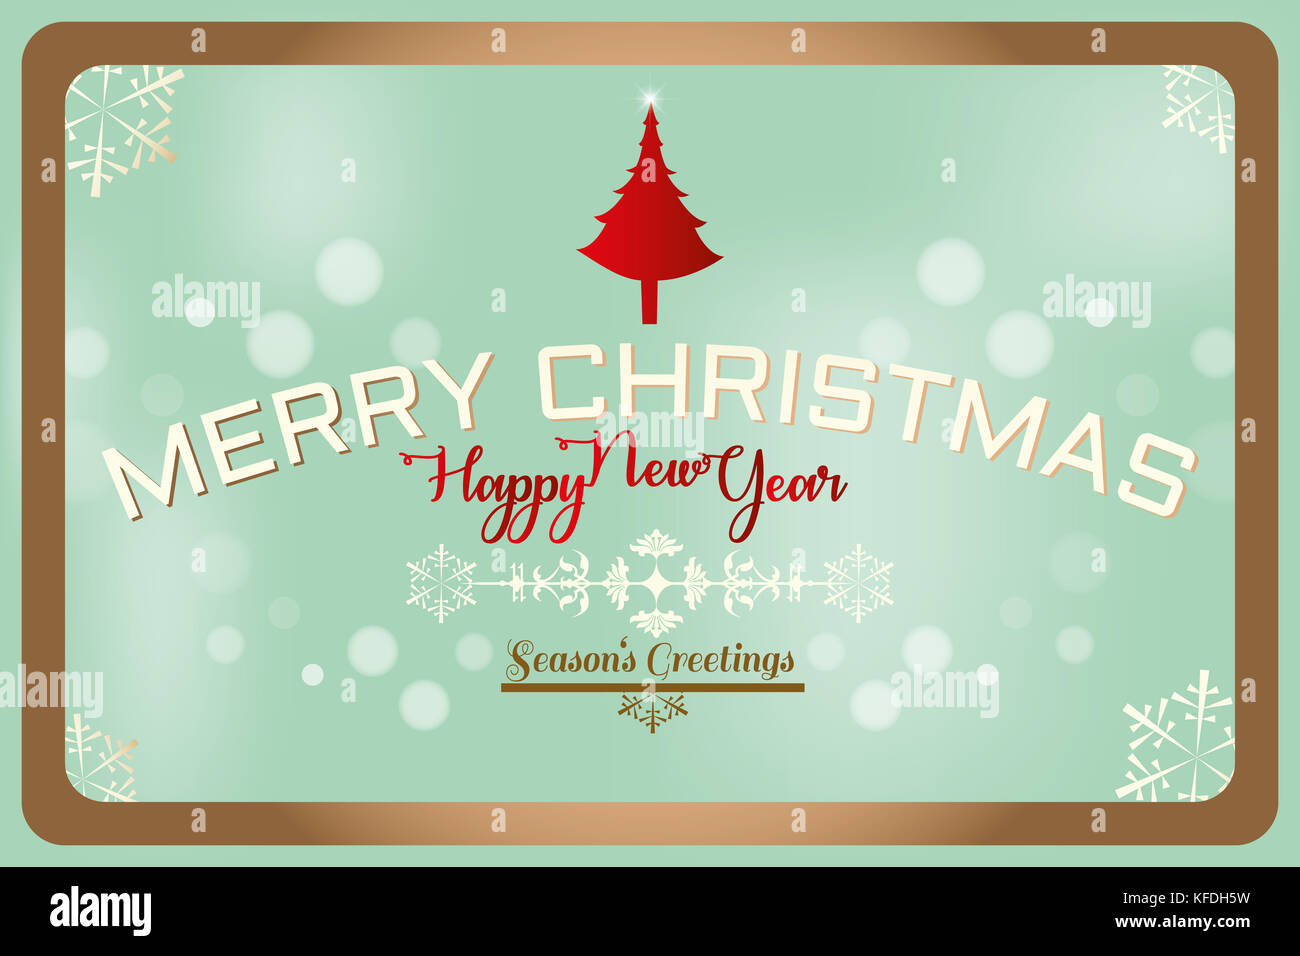 Merry Christmas Seasons Greetings And Happy New Year Text Label On